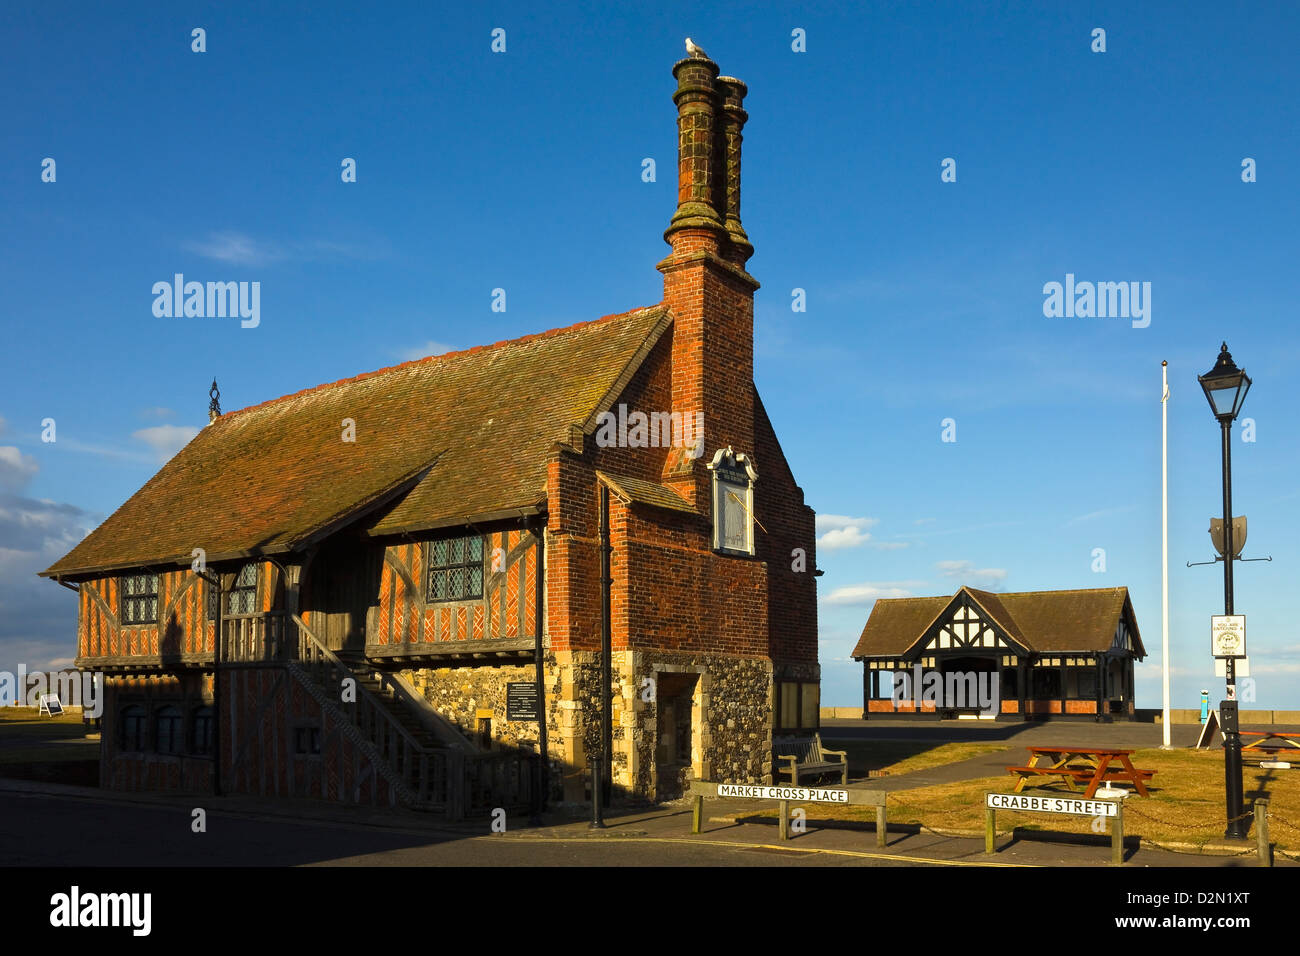 Moot Hall, a Grade I listed building, formerly a meeting hall, now a museum, Aldeburgh, Suffolk, England, UK Stock Photo